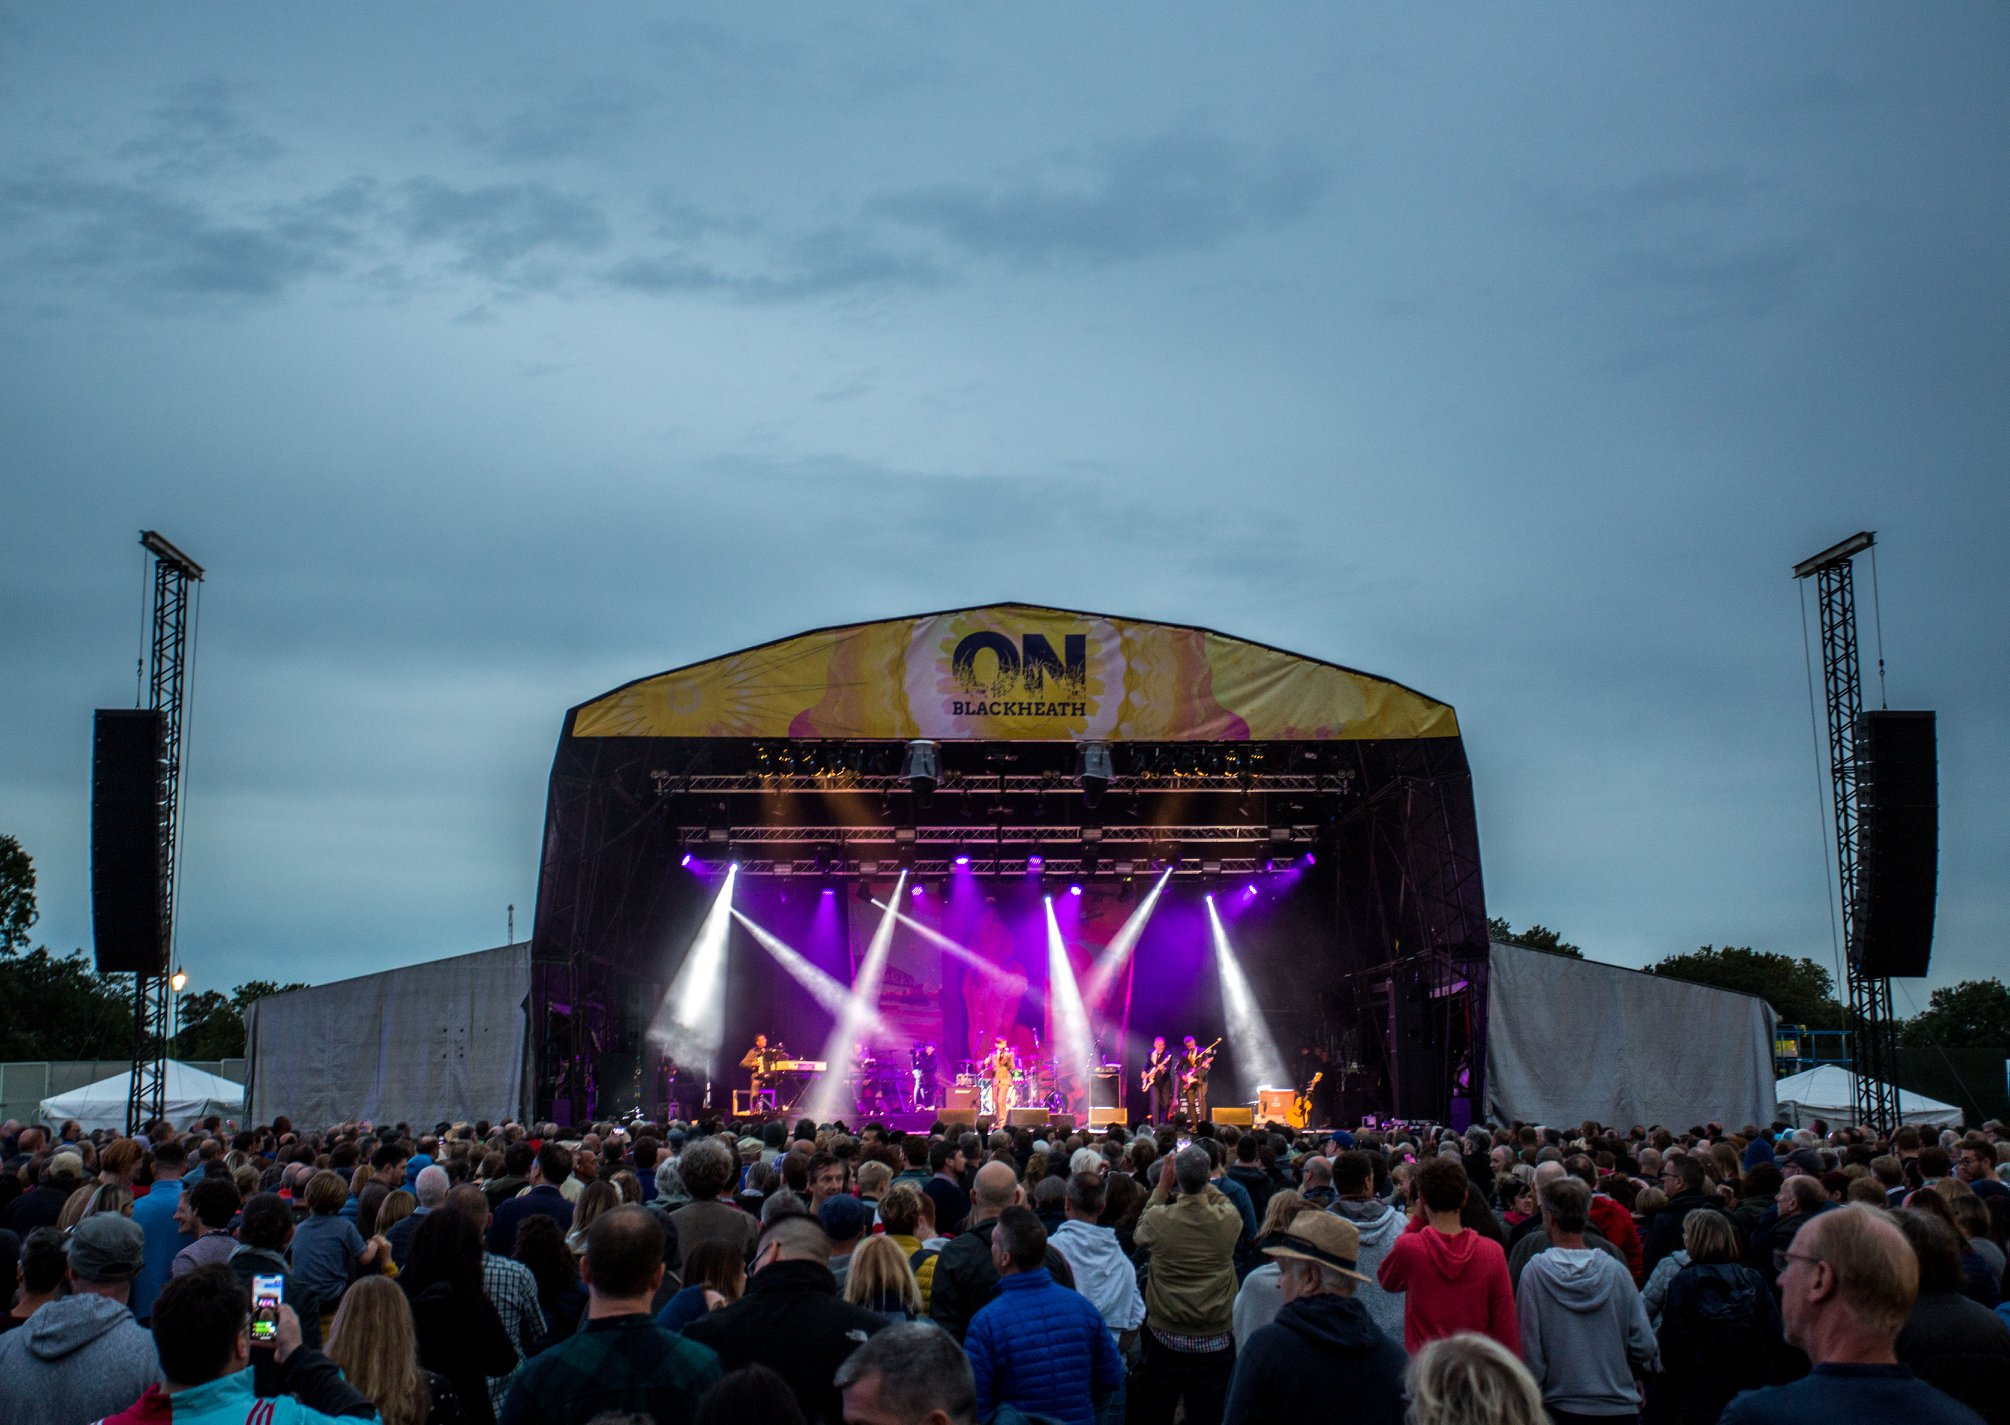 OnBlackheath news: ONBlackheath 2018, out. Thank you all for coming, we hope you had a wonderful ti…